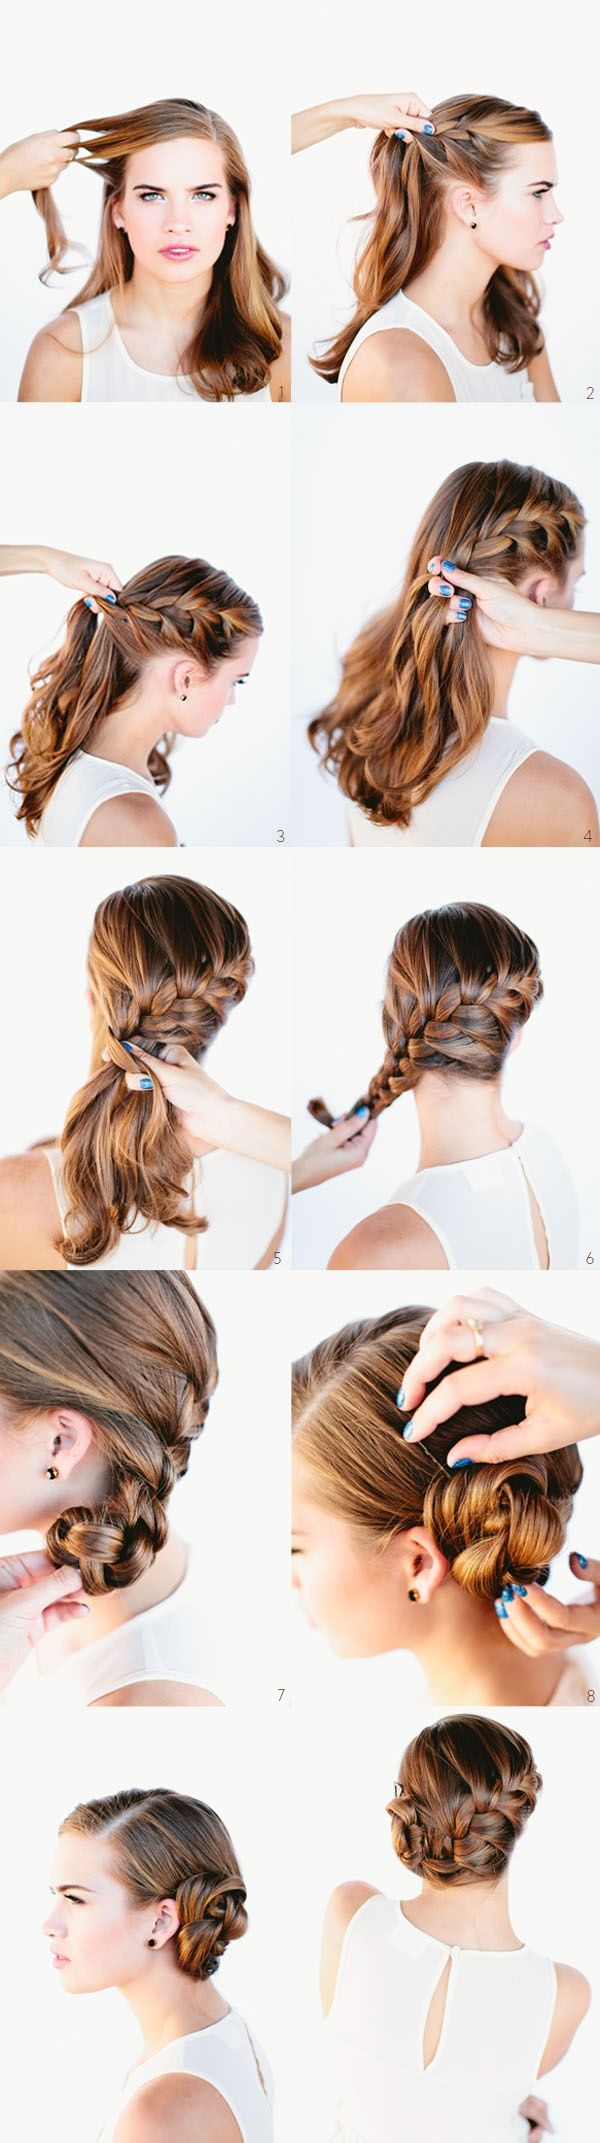 best images about bridesmaid hair ideas on pinterest black